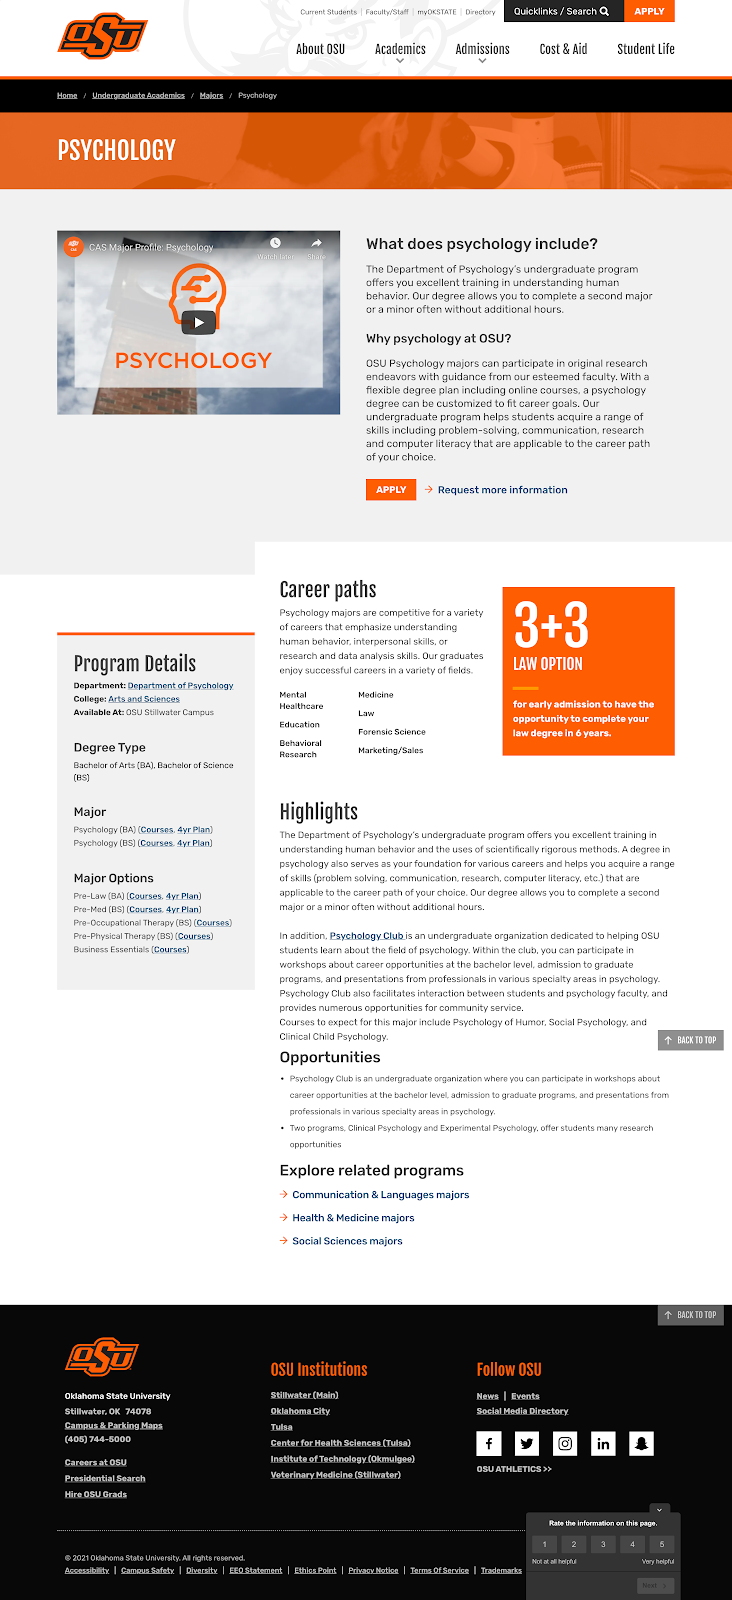 The psychology undergraduate program page from the Oklahoma State University website.